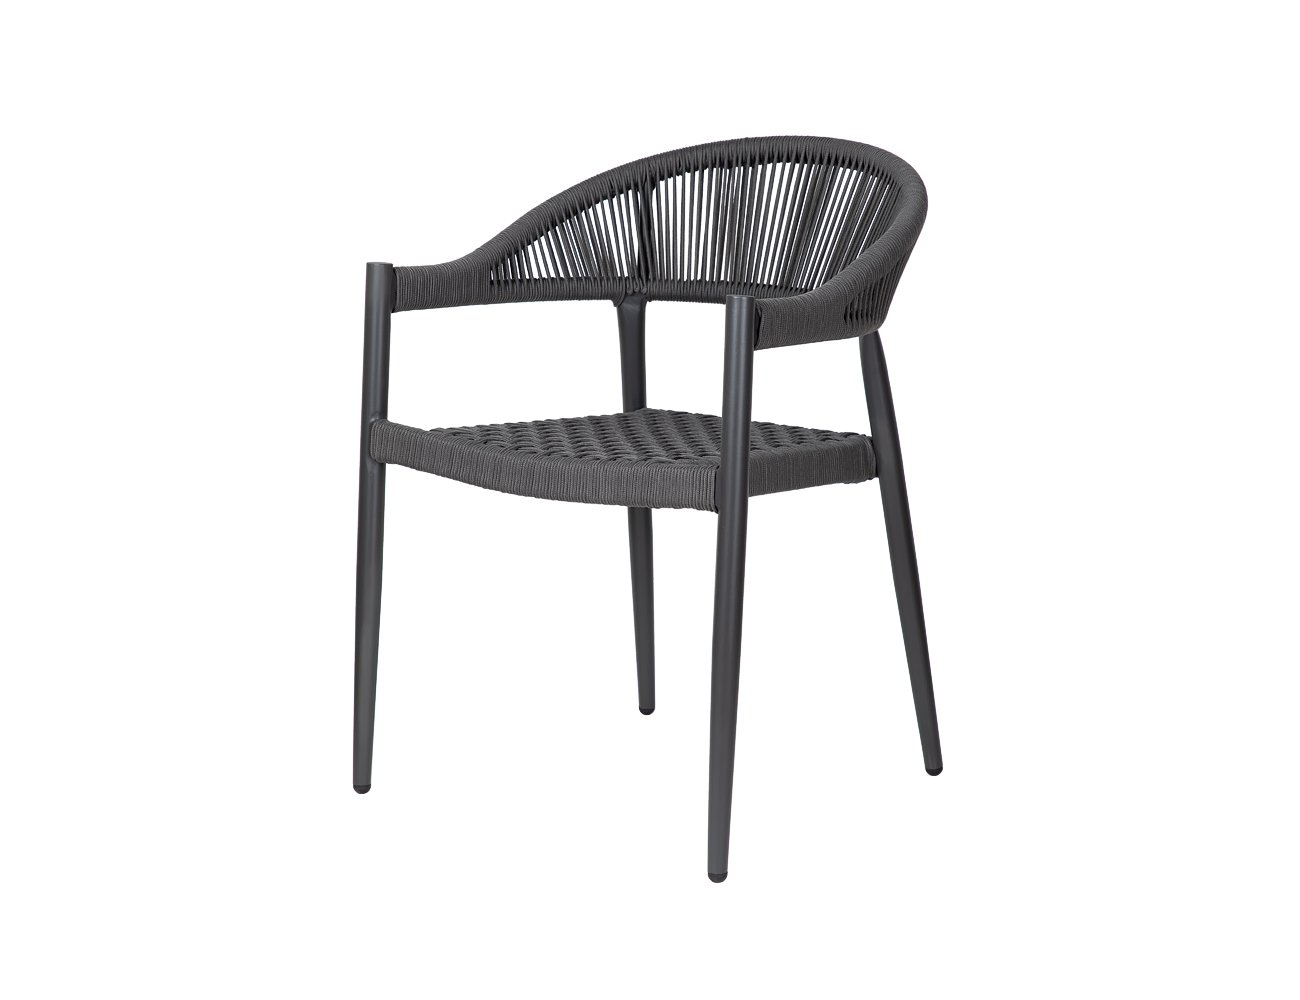 Kingfisher Aluminium and Rope Dining Chair